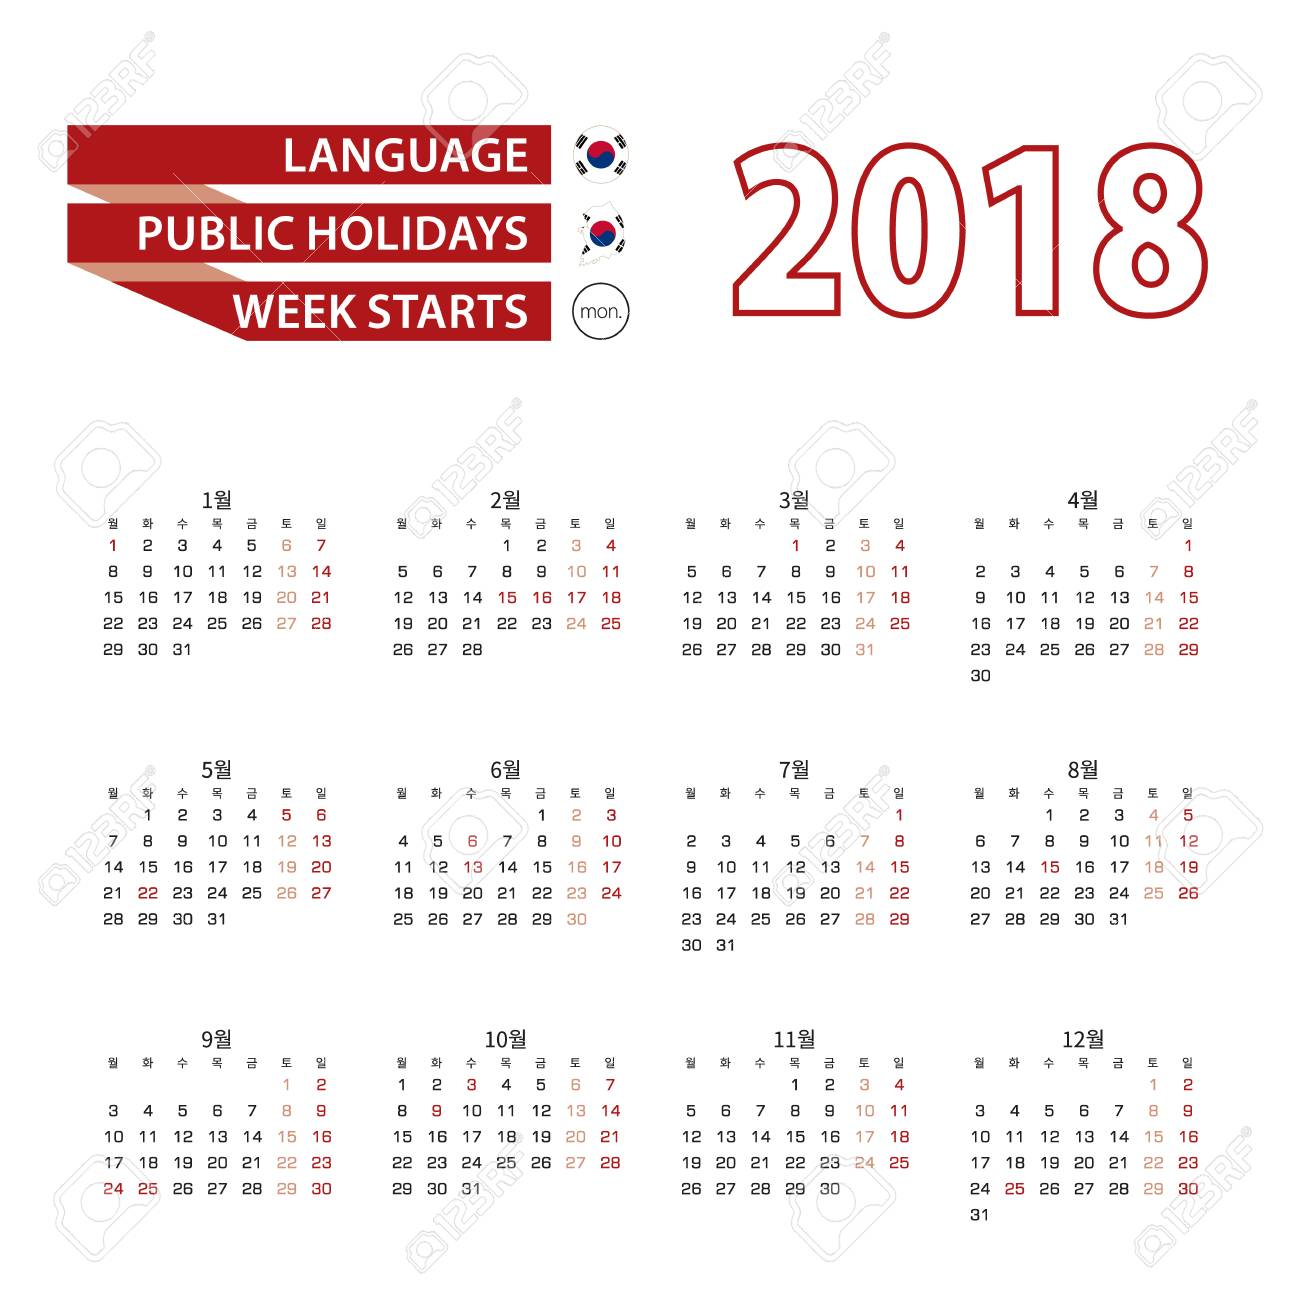 calendar 2018 in korean language with public holidays the country of south korea in year 2018